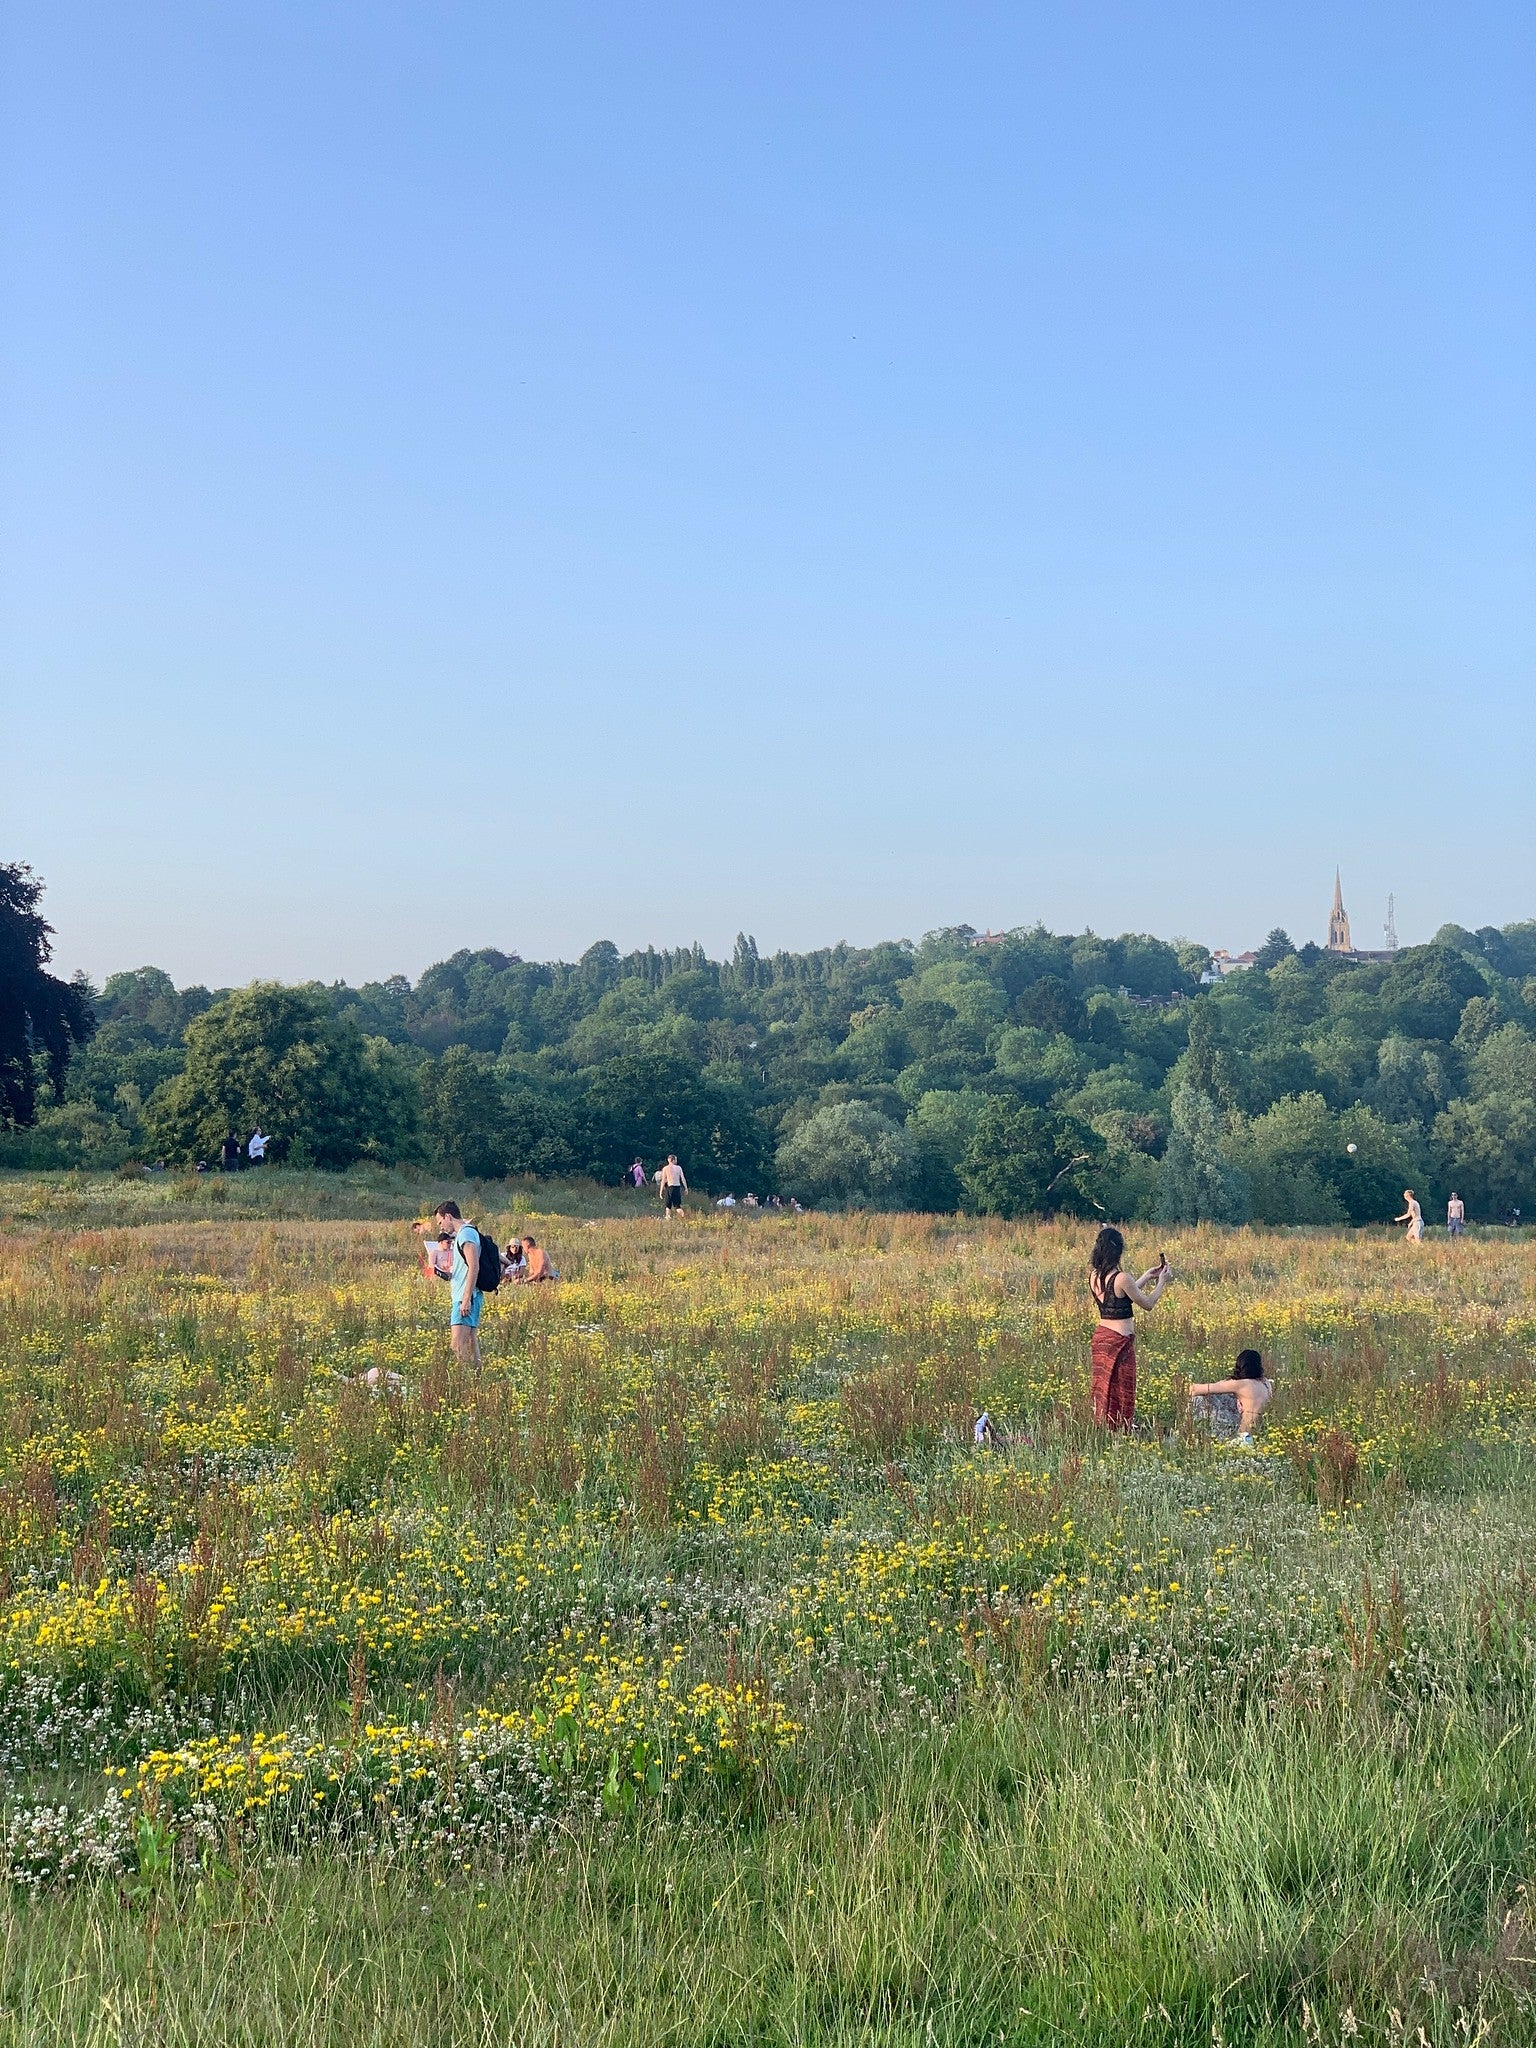 Images of Hampstead Heath